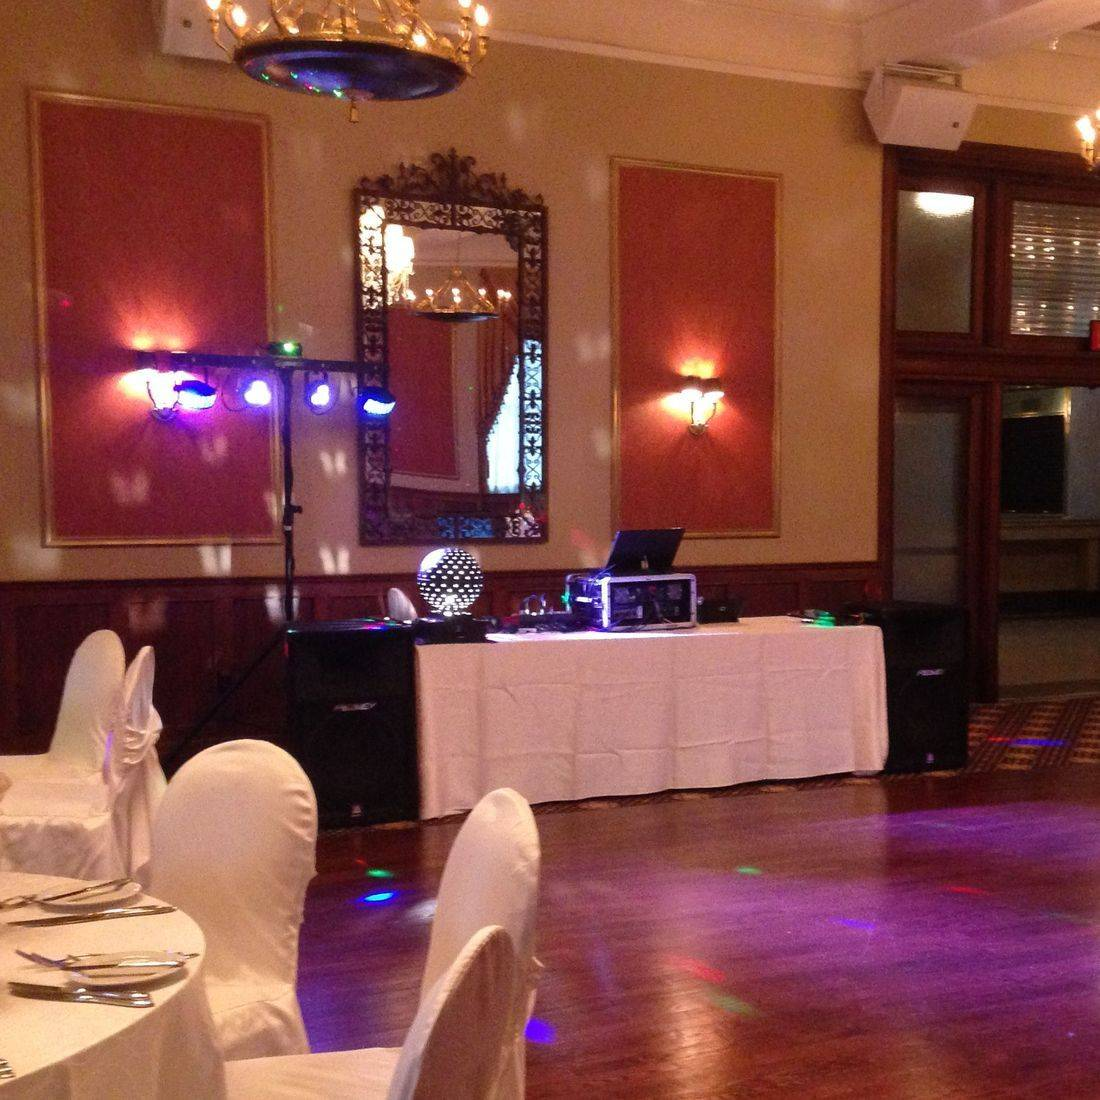 Mr. Productions DJ Service at a grade 8 graduation at Liuna Station in Hamilton.